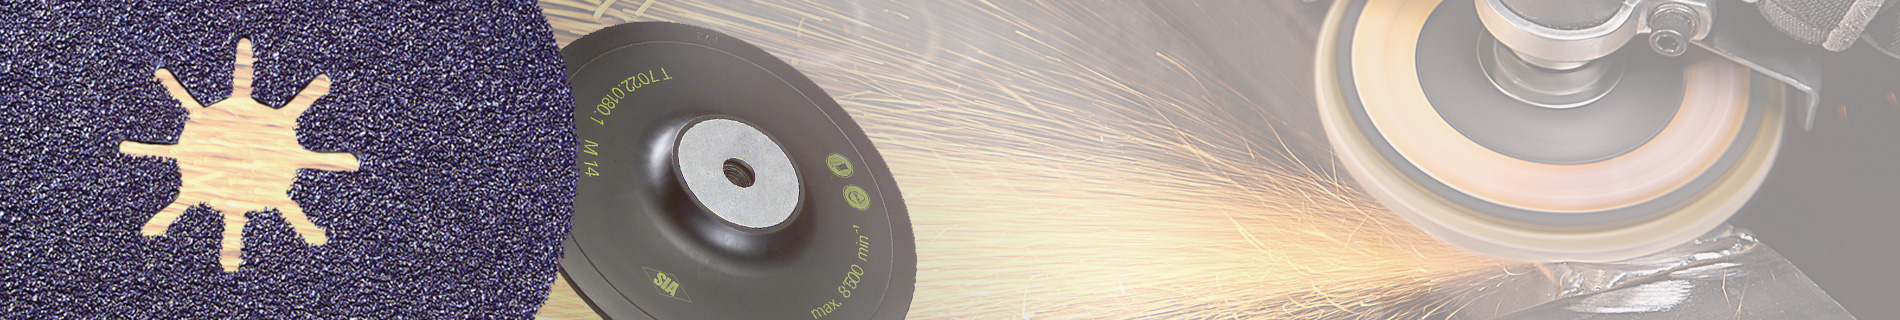 Fibre-backed Sanding Discs